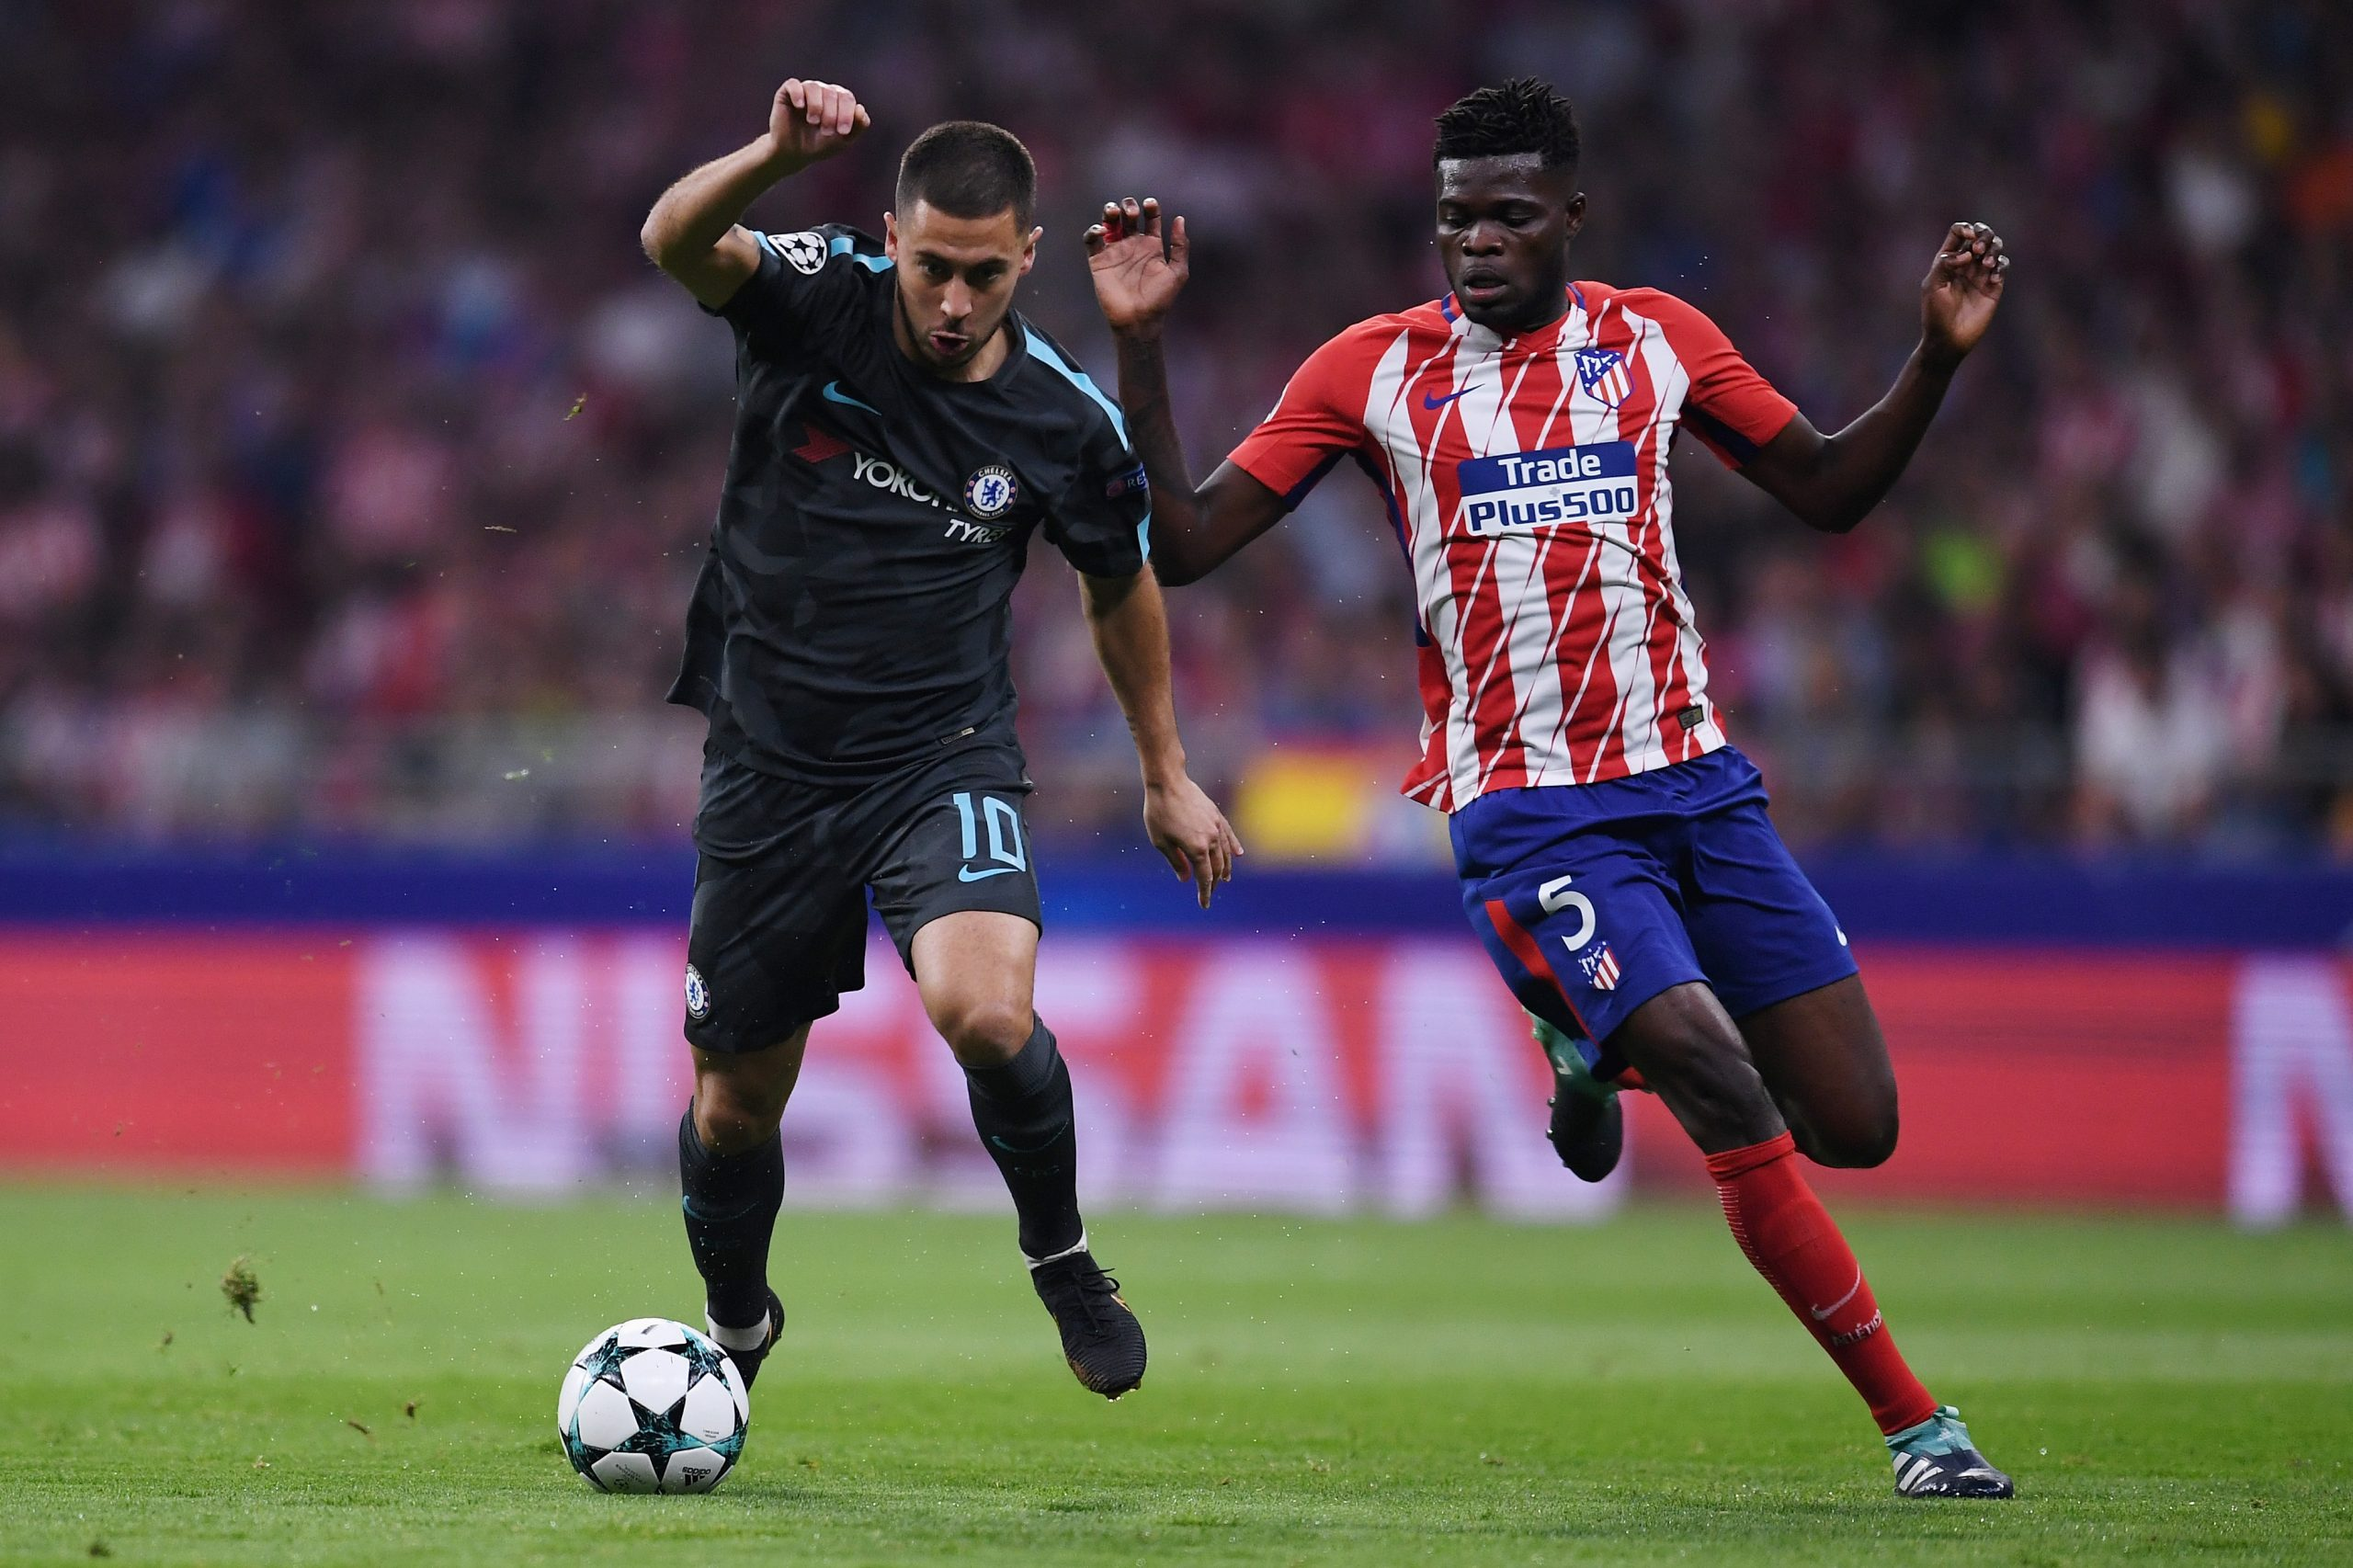 Chelsea lost out on Thomas Partey to Arsenal in the summer transfer window. (GETTY Images)